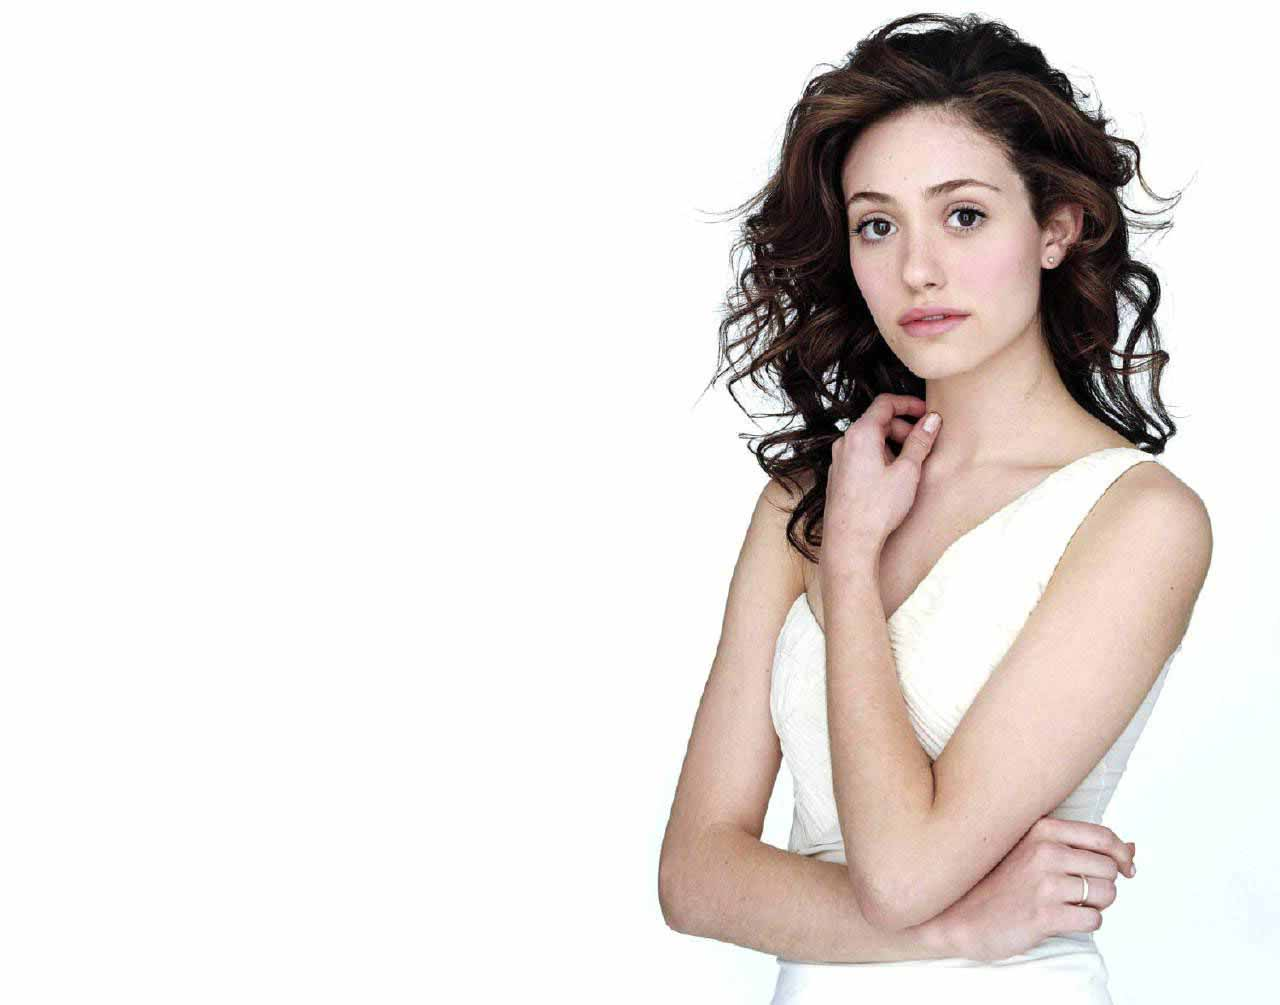 emmy rossum sublime wallpaper - photo #18